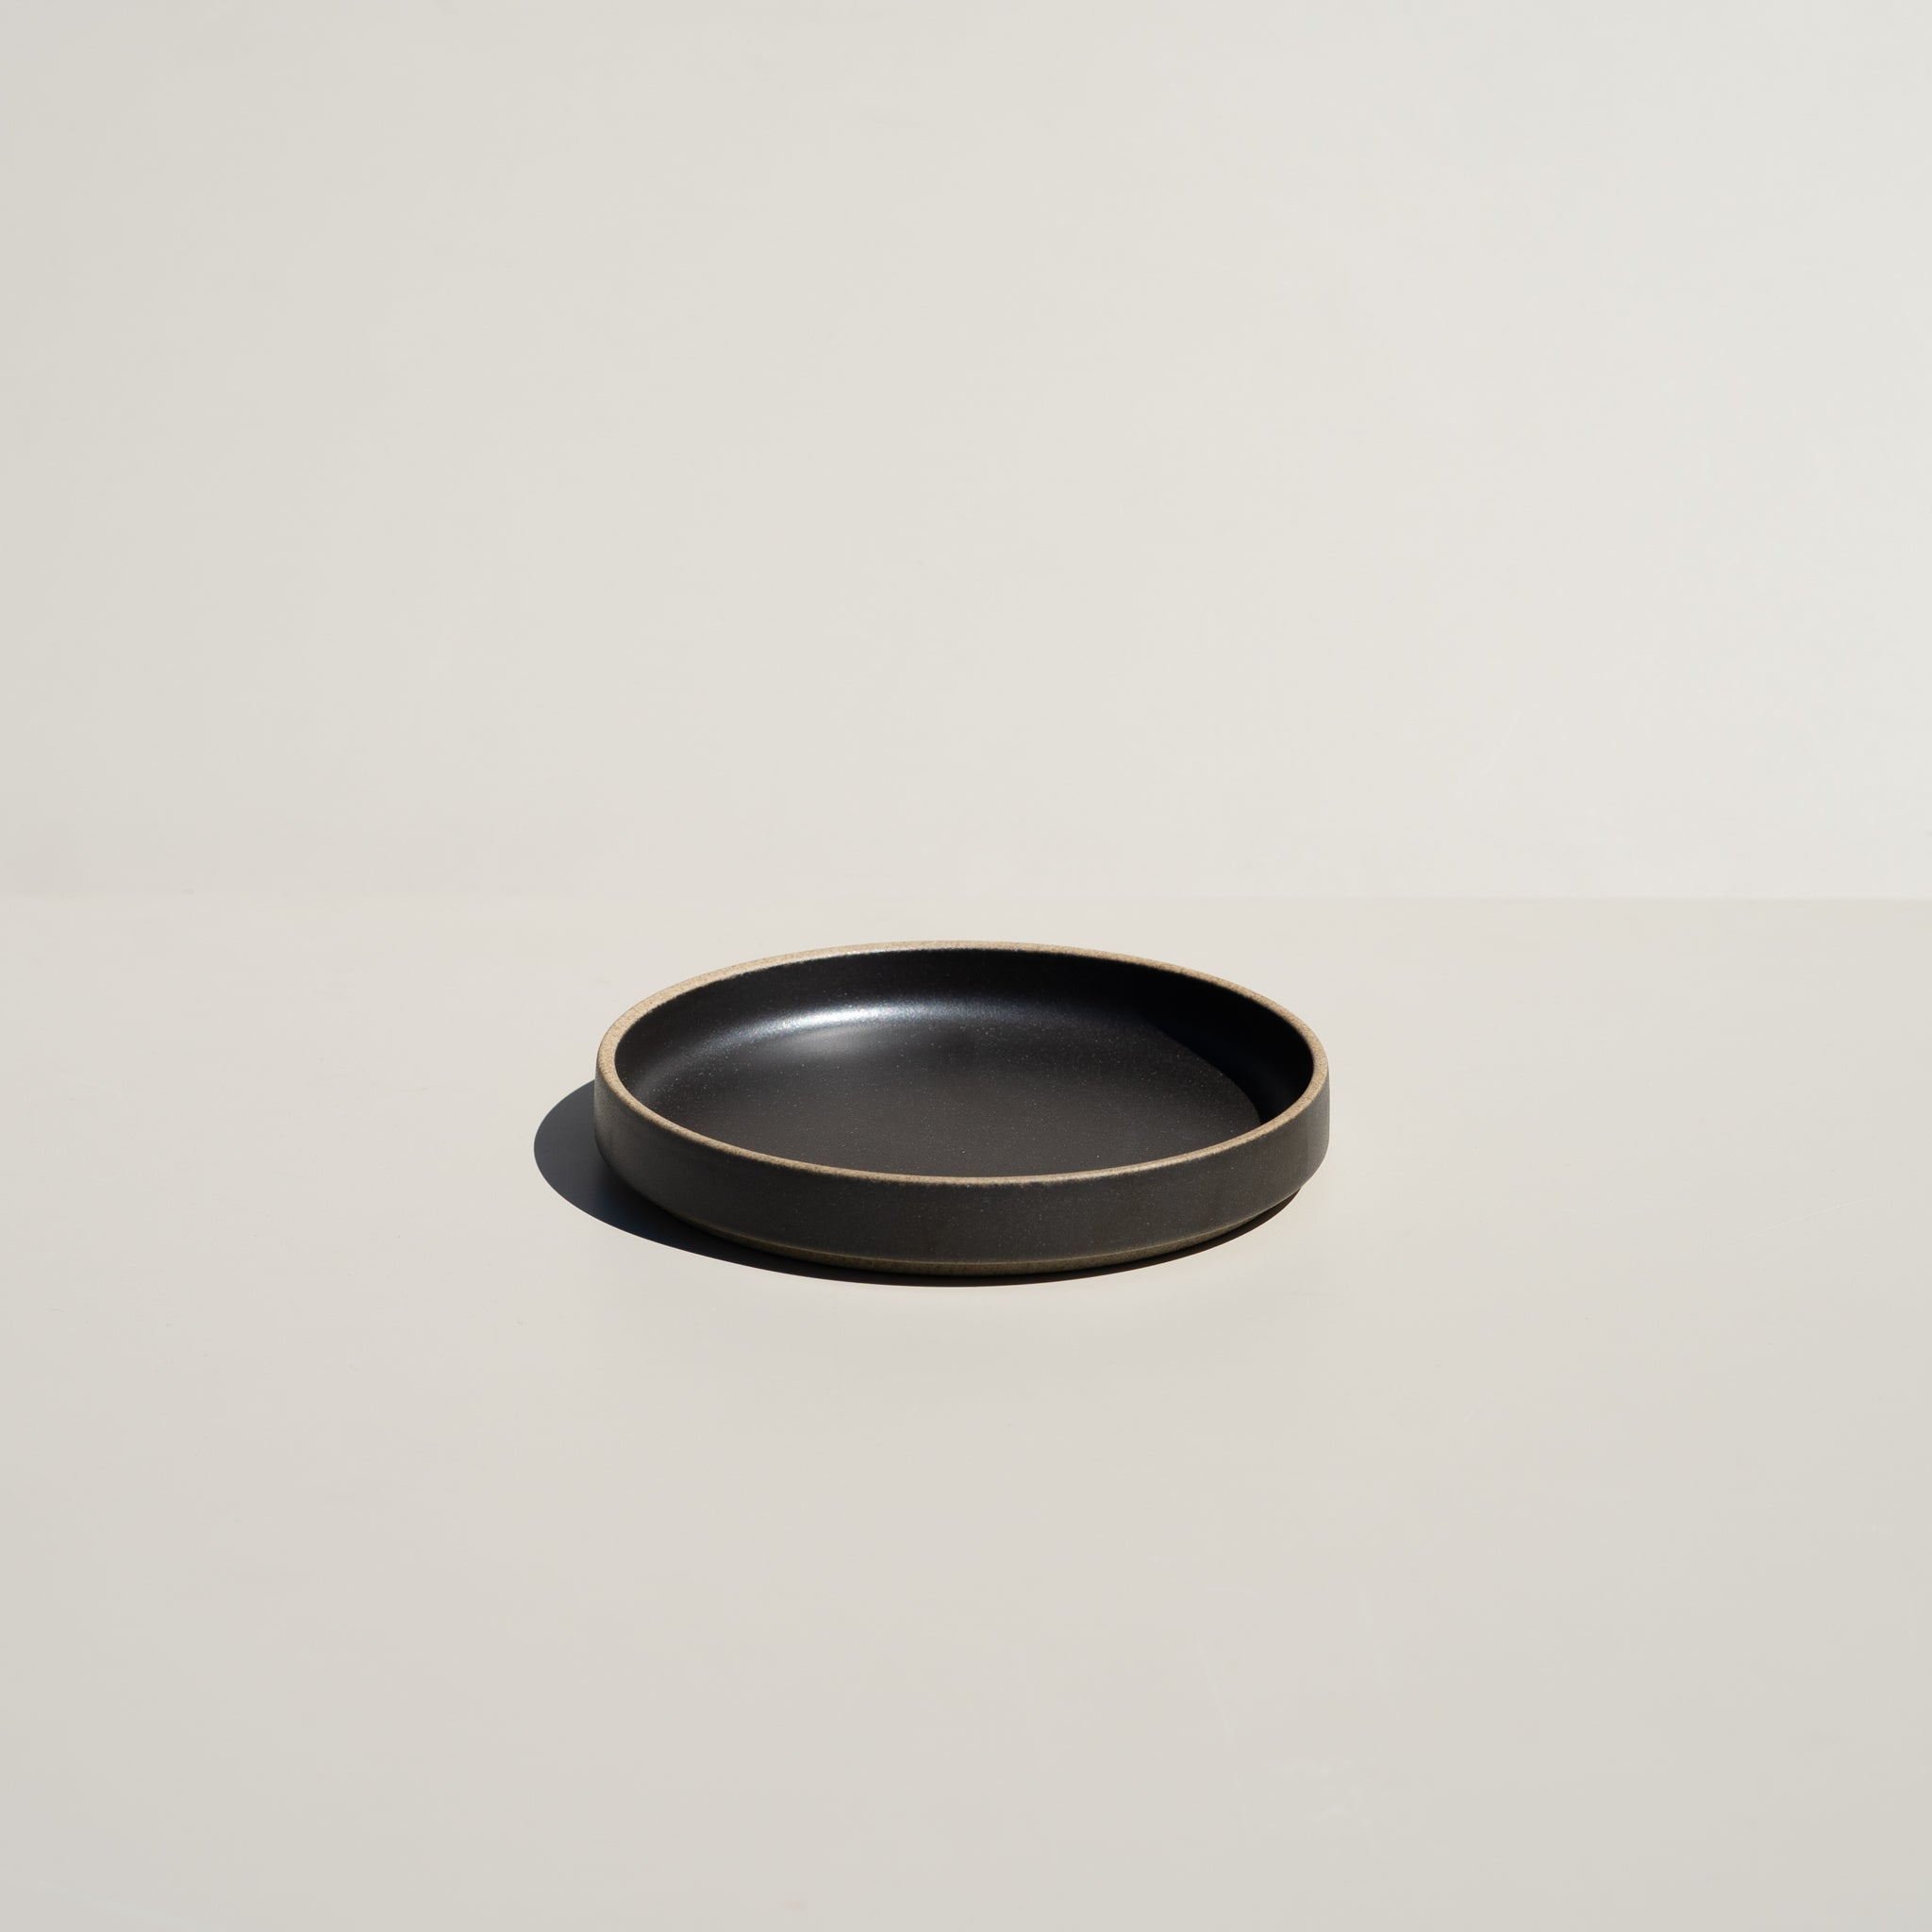 "Hasami Porcelain 5.5/8"" plate in satin black finish."